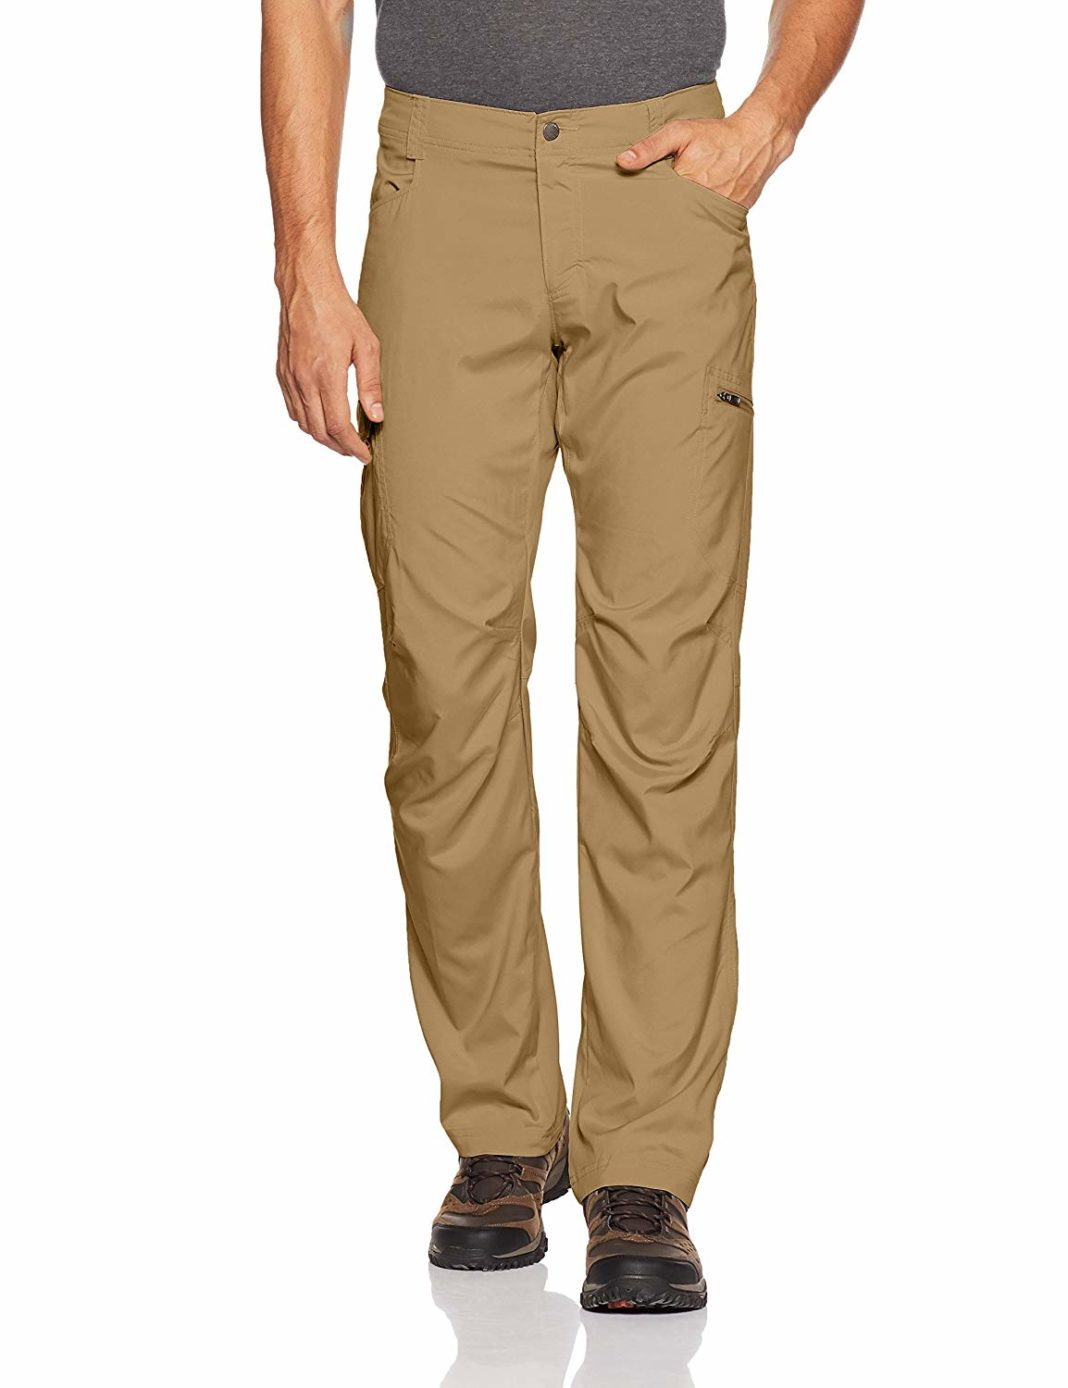 Men's Columbia Silver Ridge Stretch Pants - Comfort